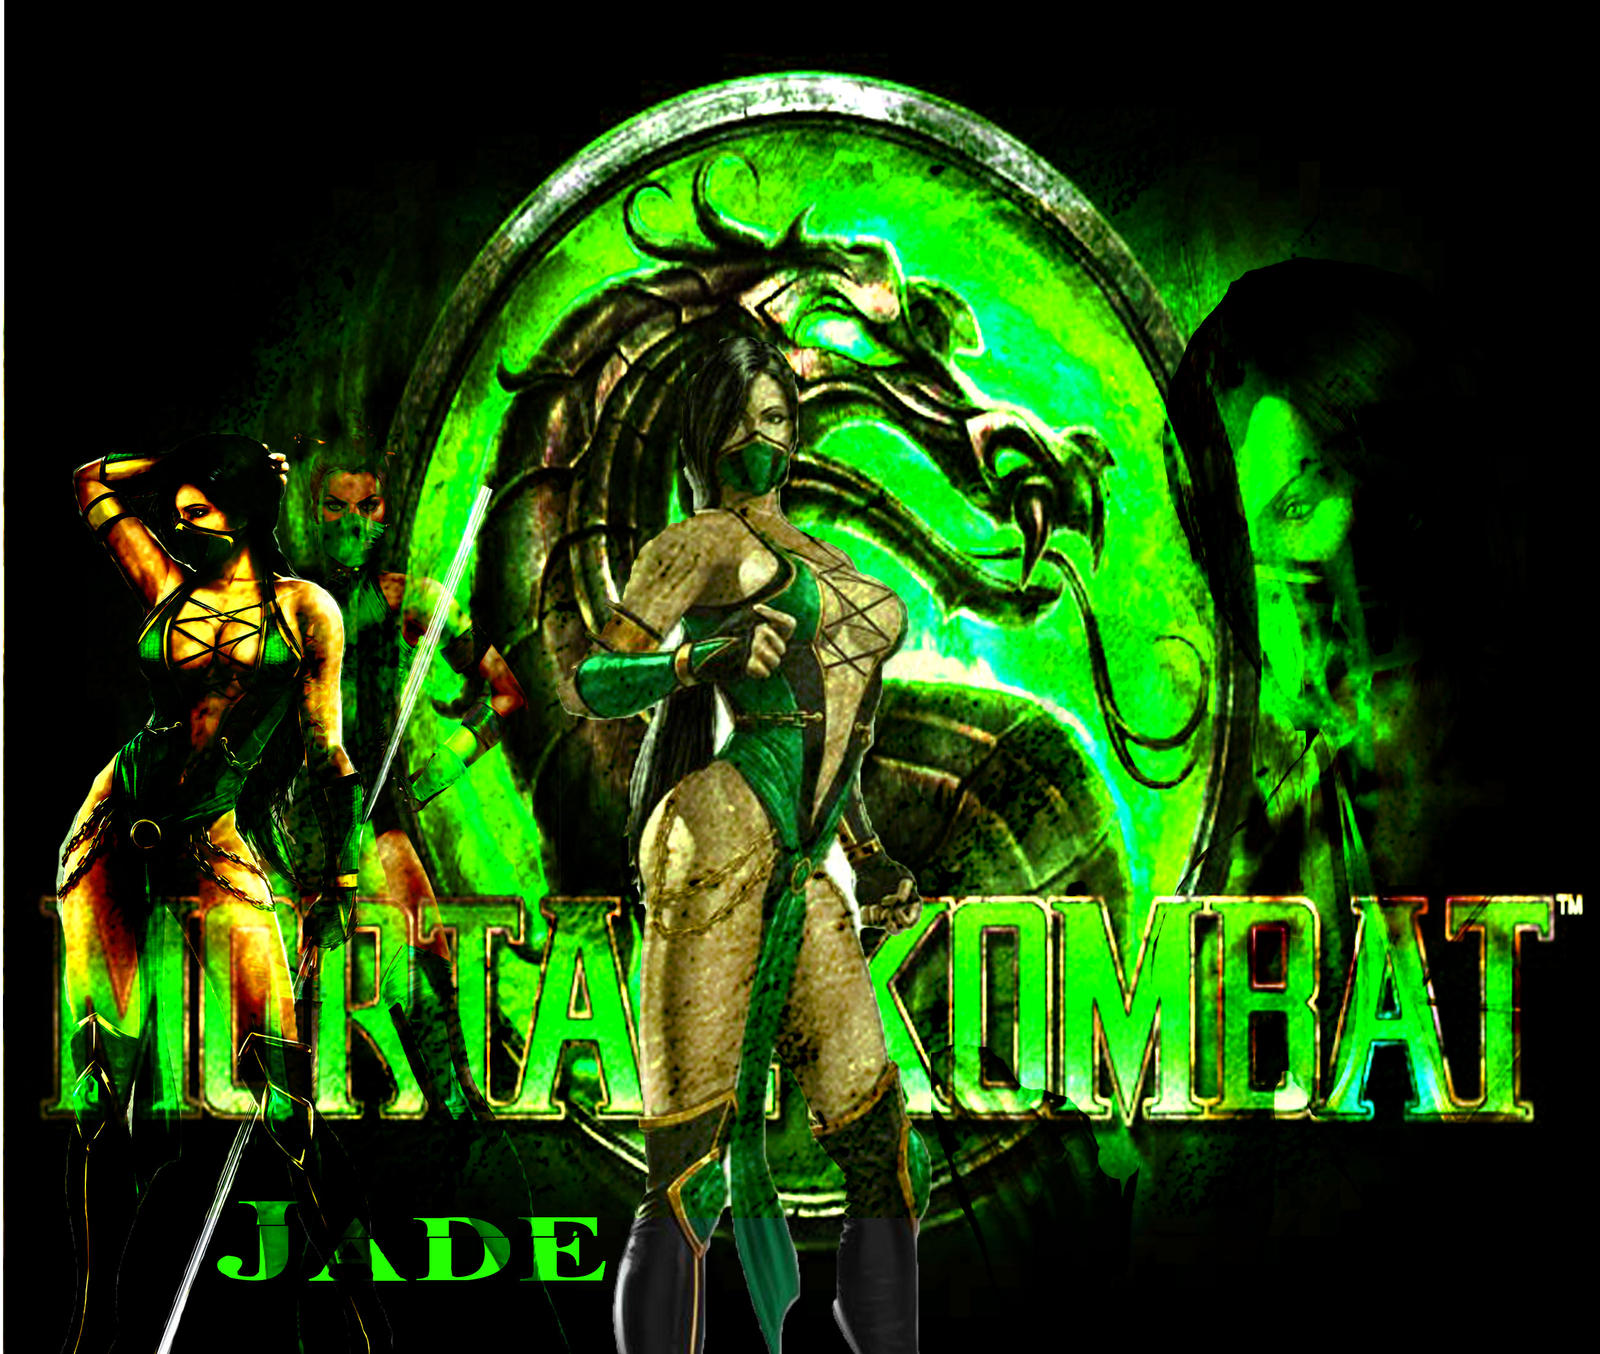 Pics of jade in mortal kombat 9  nude beauties